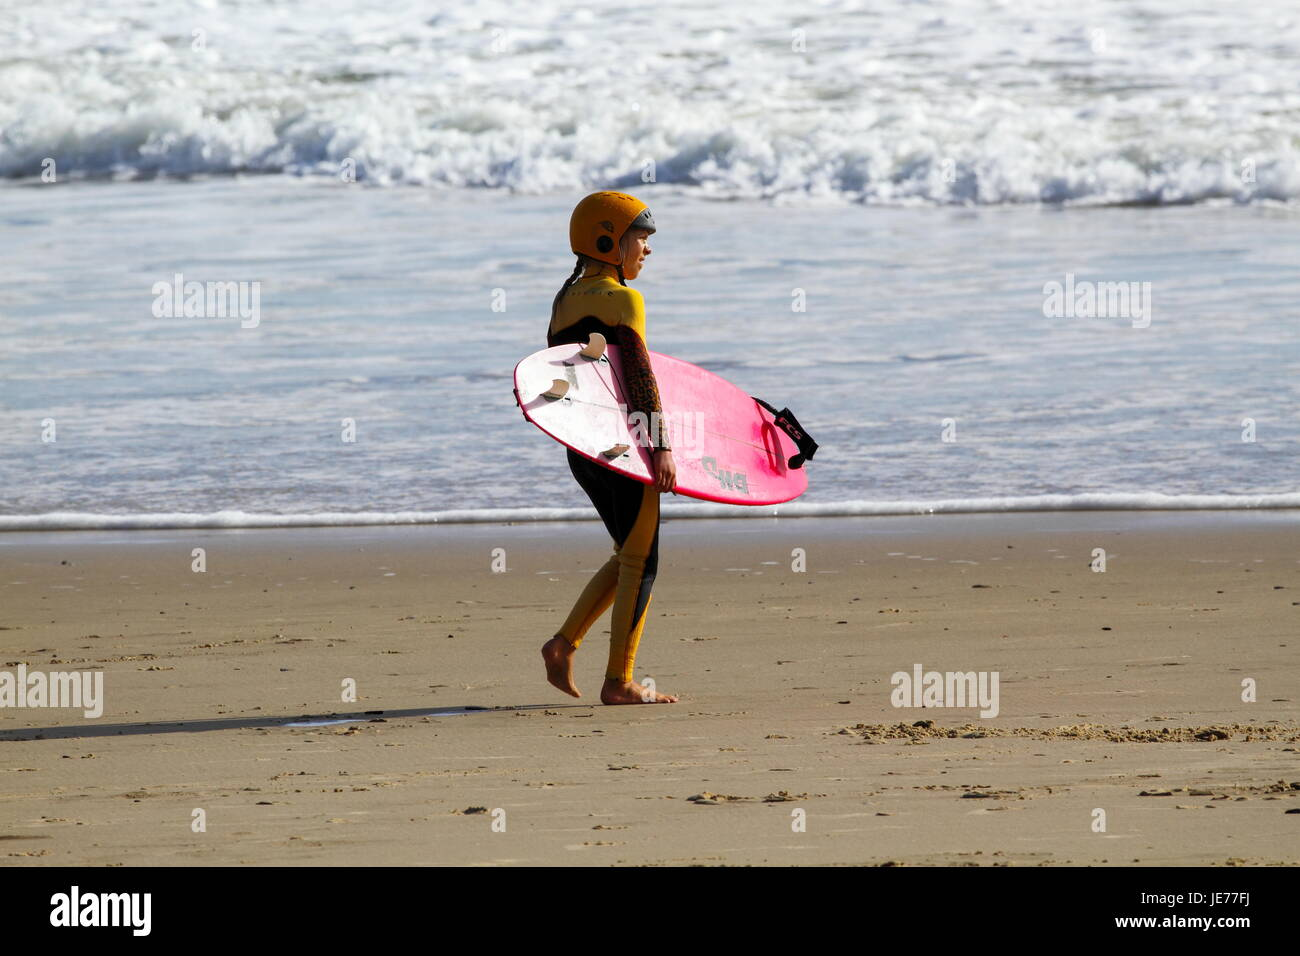 A young preteen surfer girl going surfing. - Stock Image